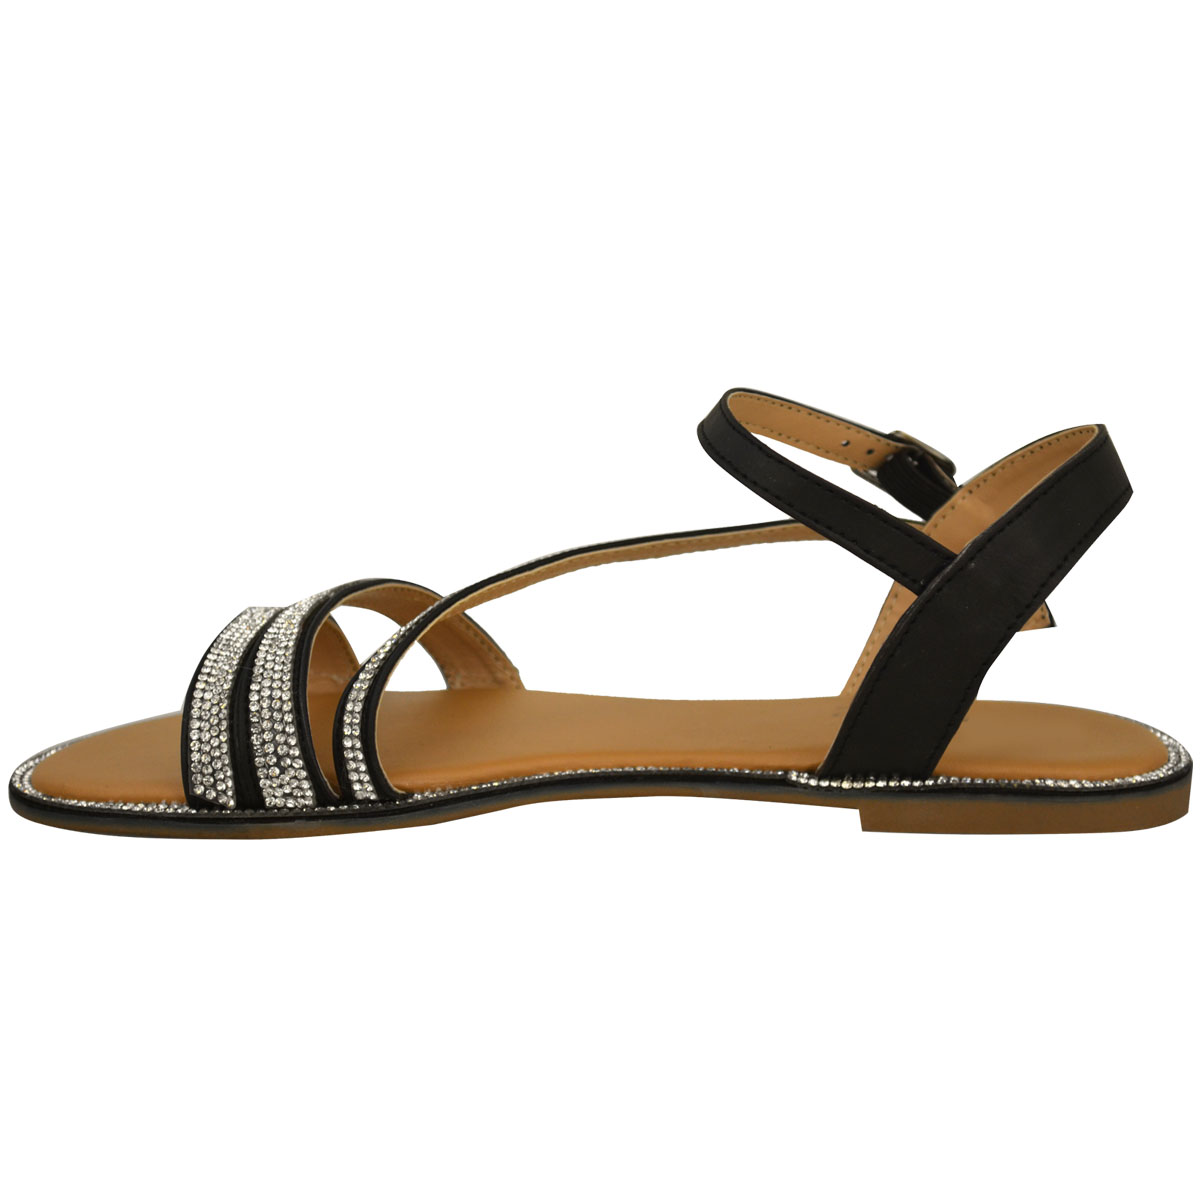 Shop Target for Sandals you will love at great low prices. Spend $35+ or use your REDcard & get free 2-day shipping on most items or same-day pick-up in store.